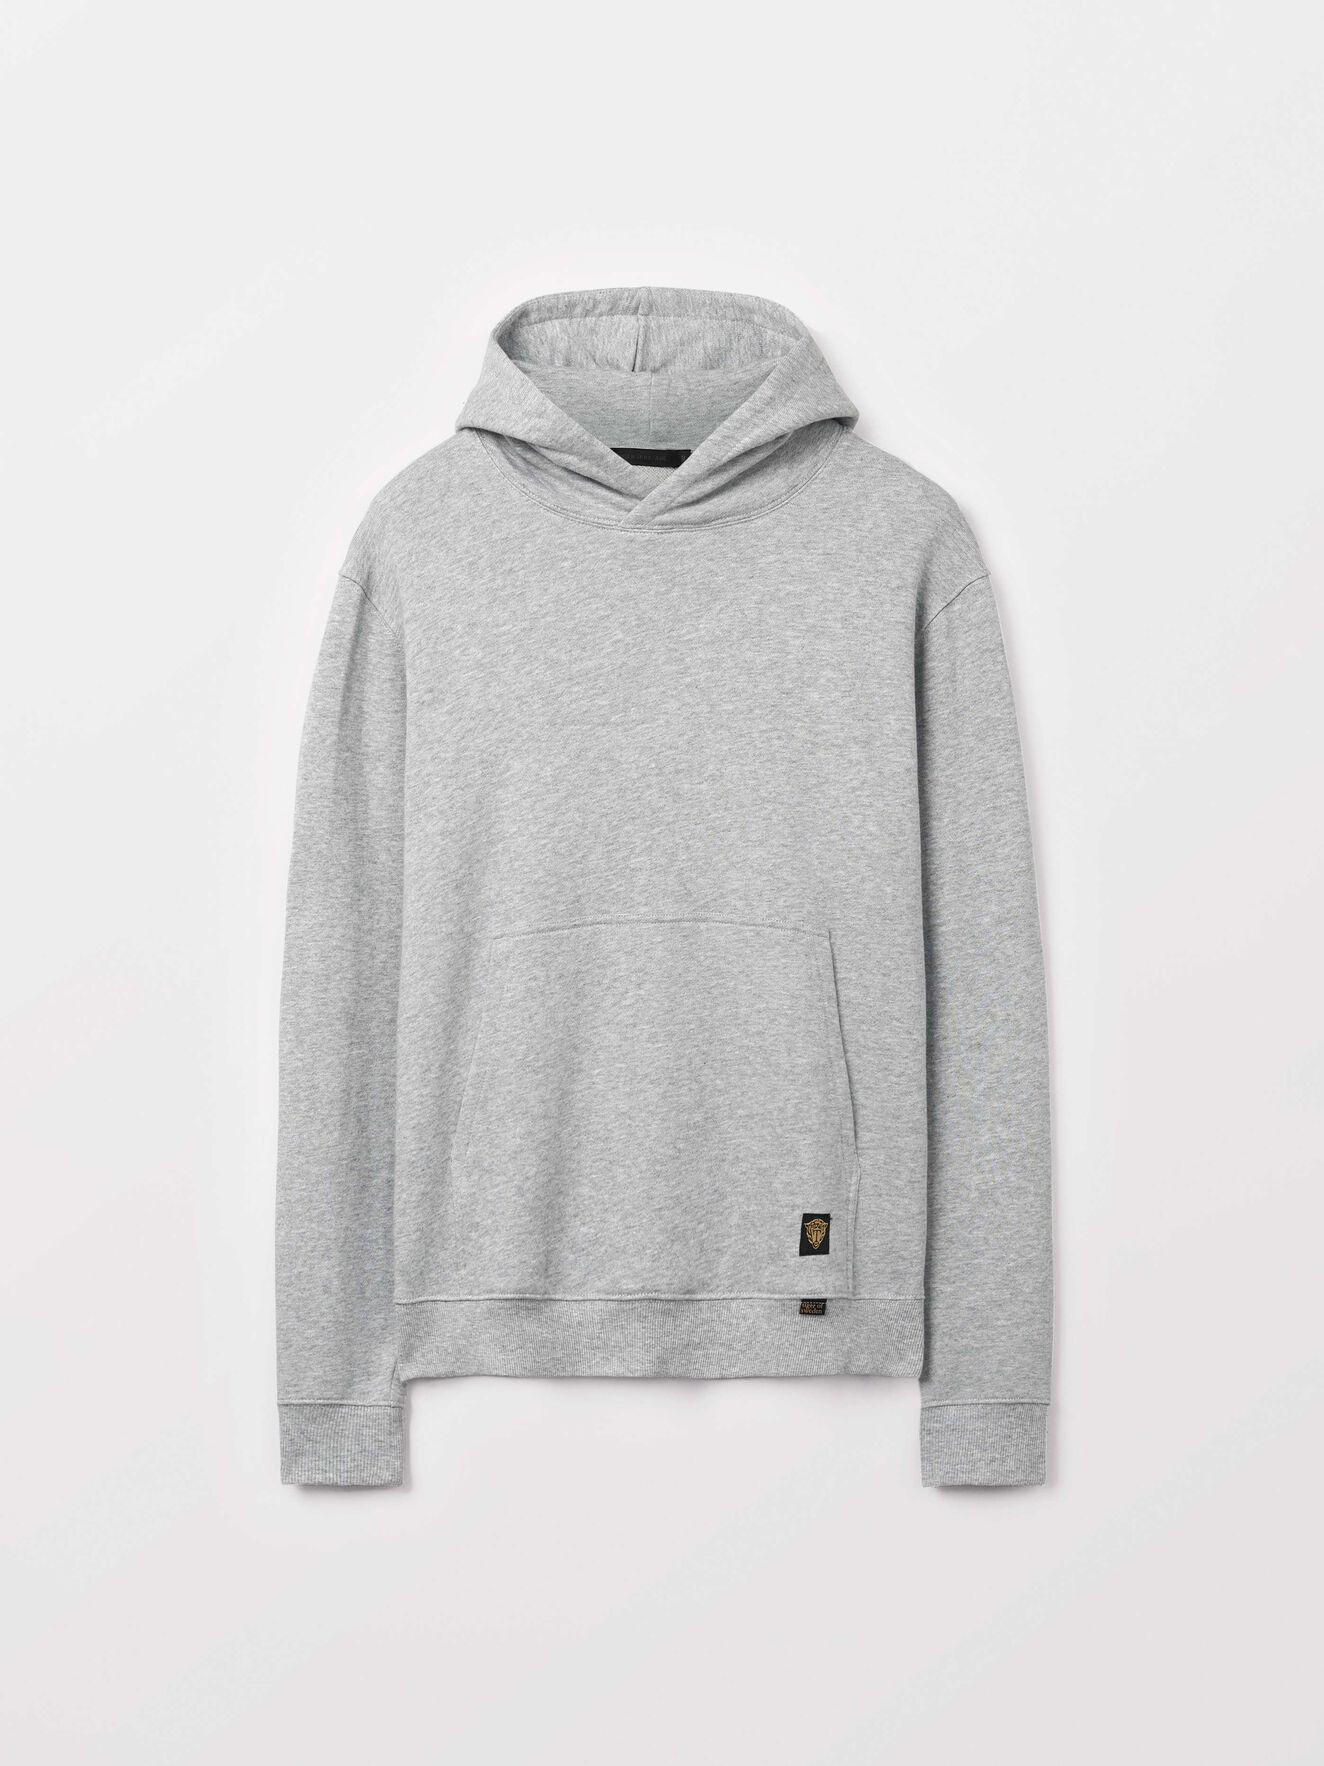 Eliaz Hoodie in Grey melange from Tiger of Sweden